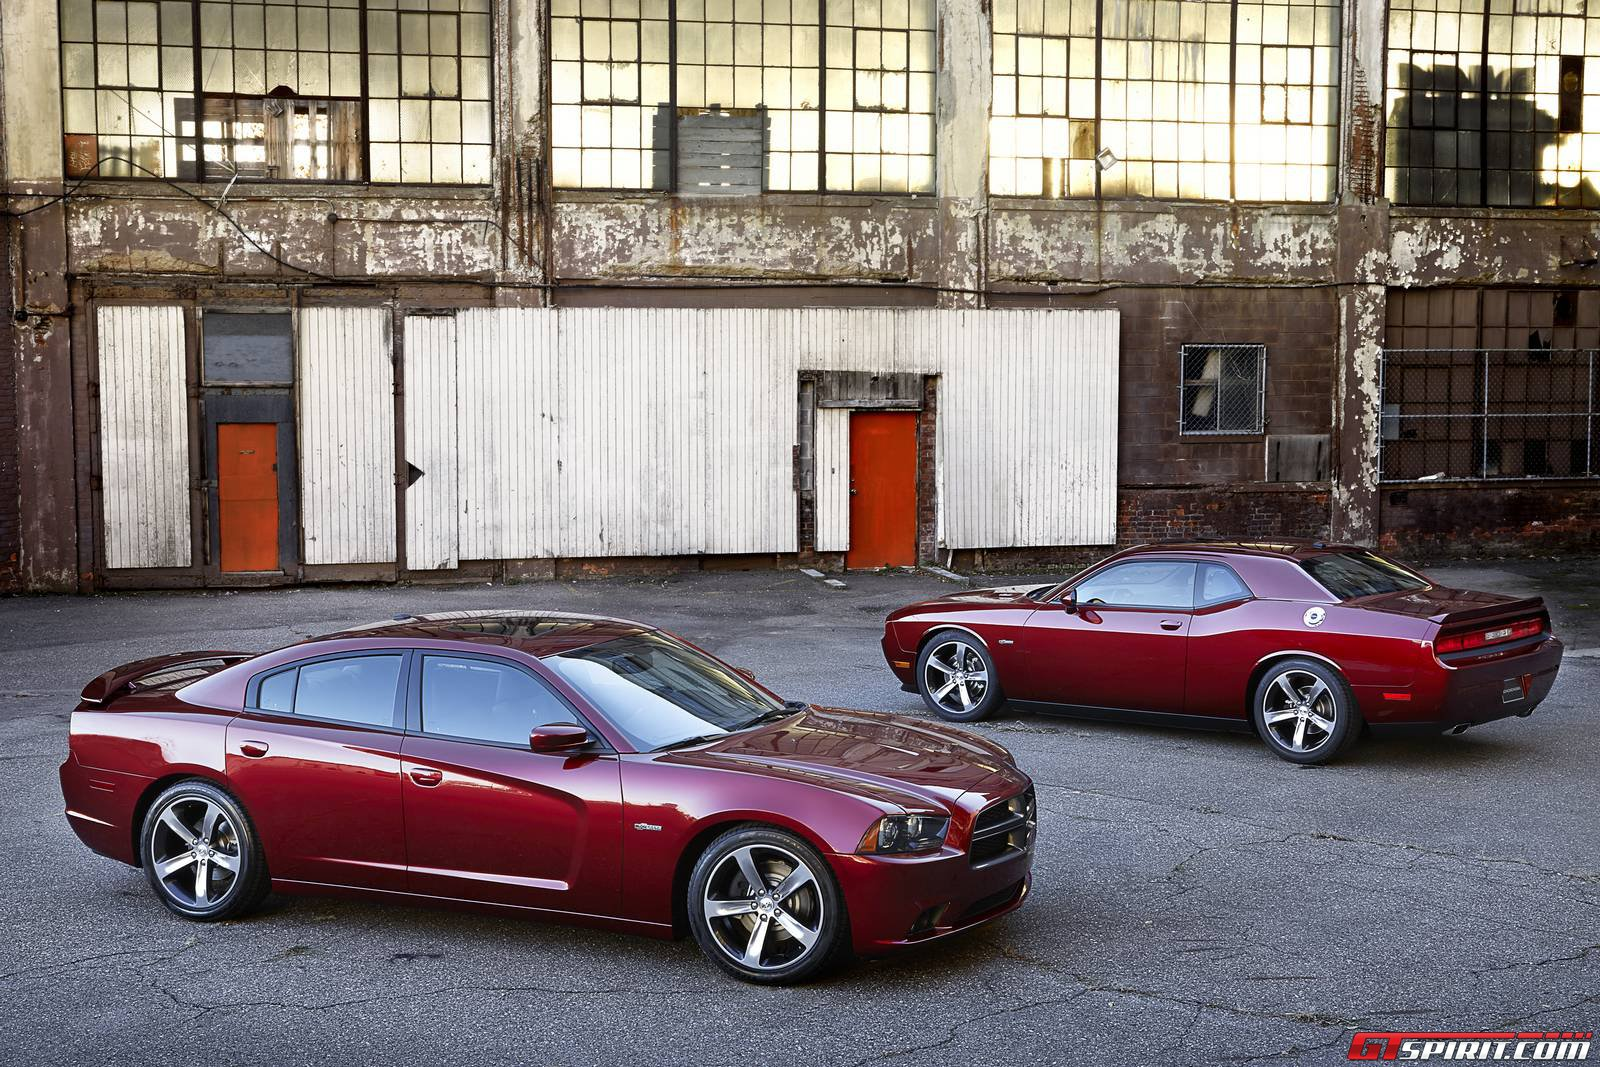 Official: 2014 Dodge Charger and Dodge Challenger 100th Anniversary